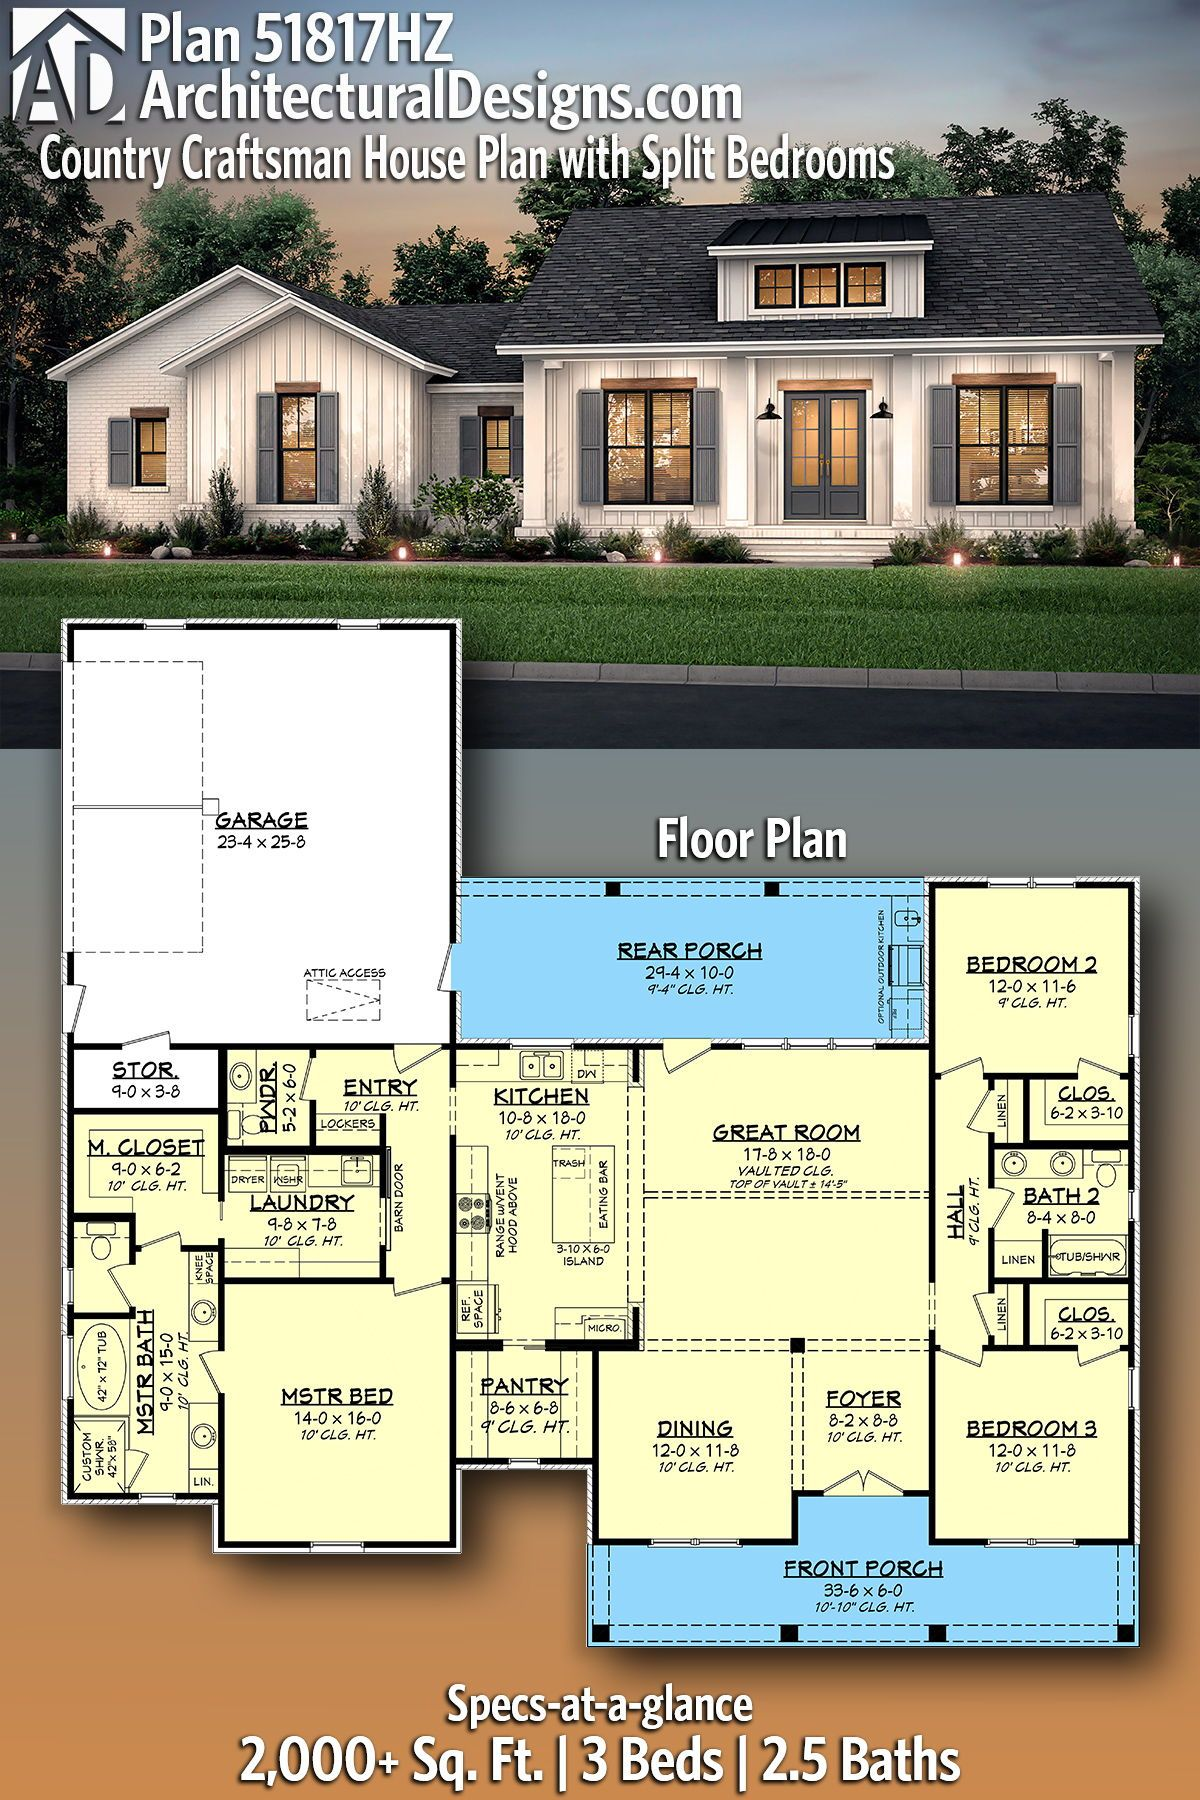 Plan 51817hz Country Craftsman House Plan With Split Bedrooms House Plans Farmhouse Craftsman House Plan Craftsman House Plans